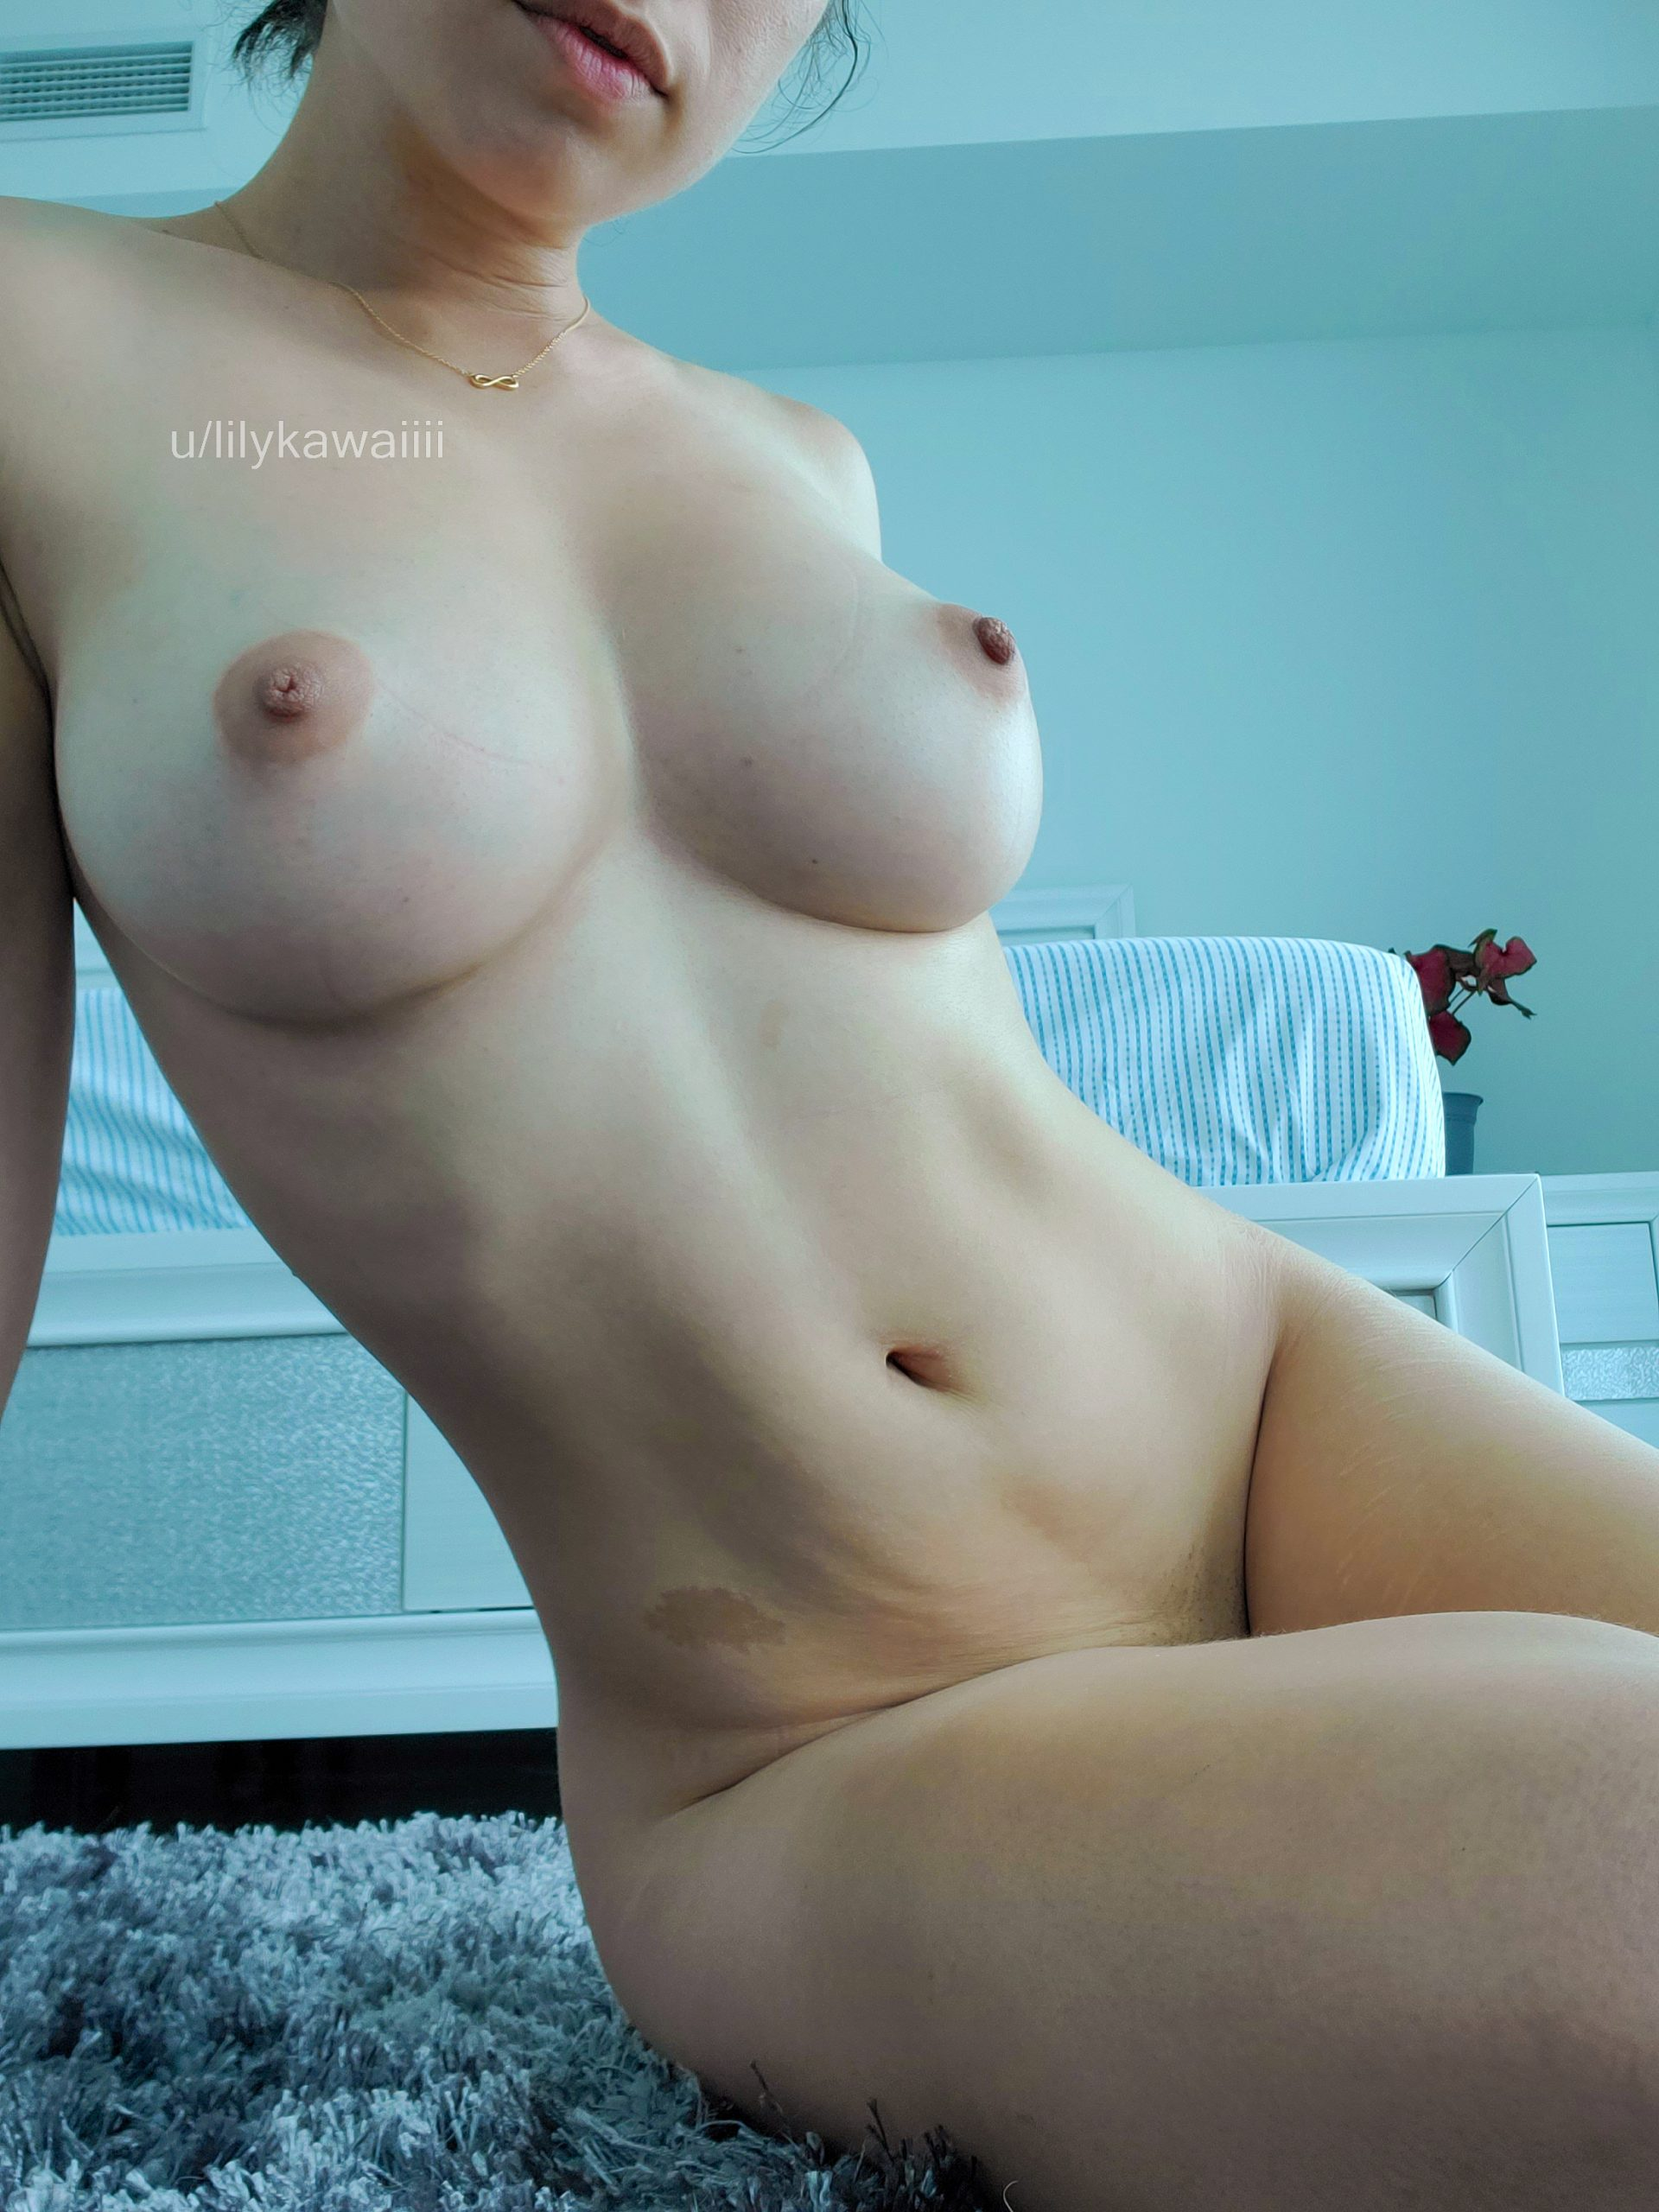 How Do You Like Little Asians With Big Boobies?